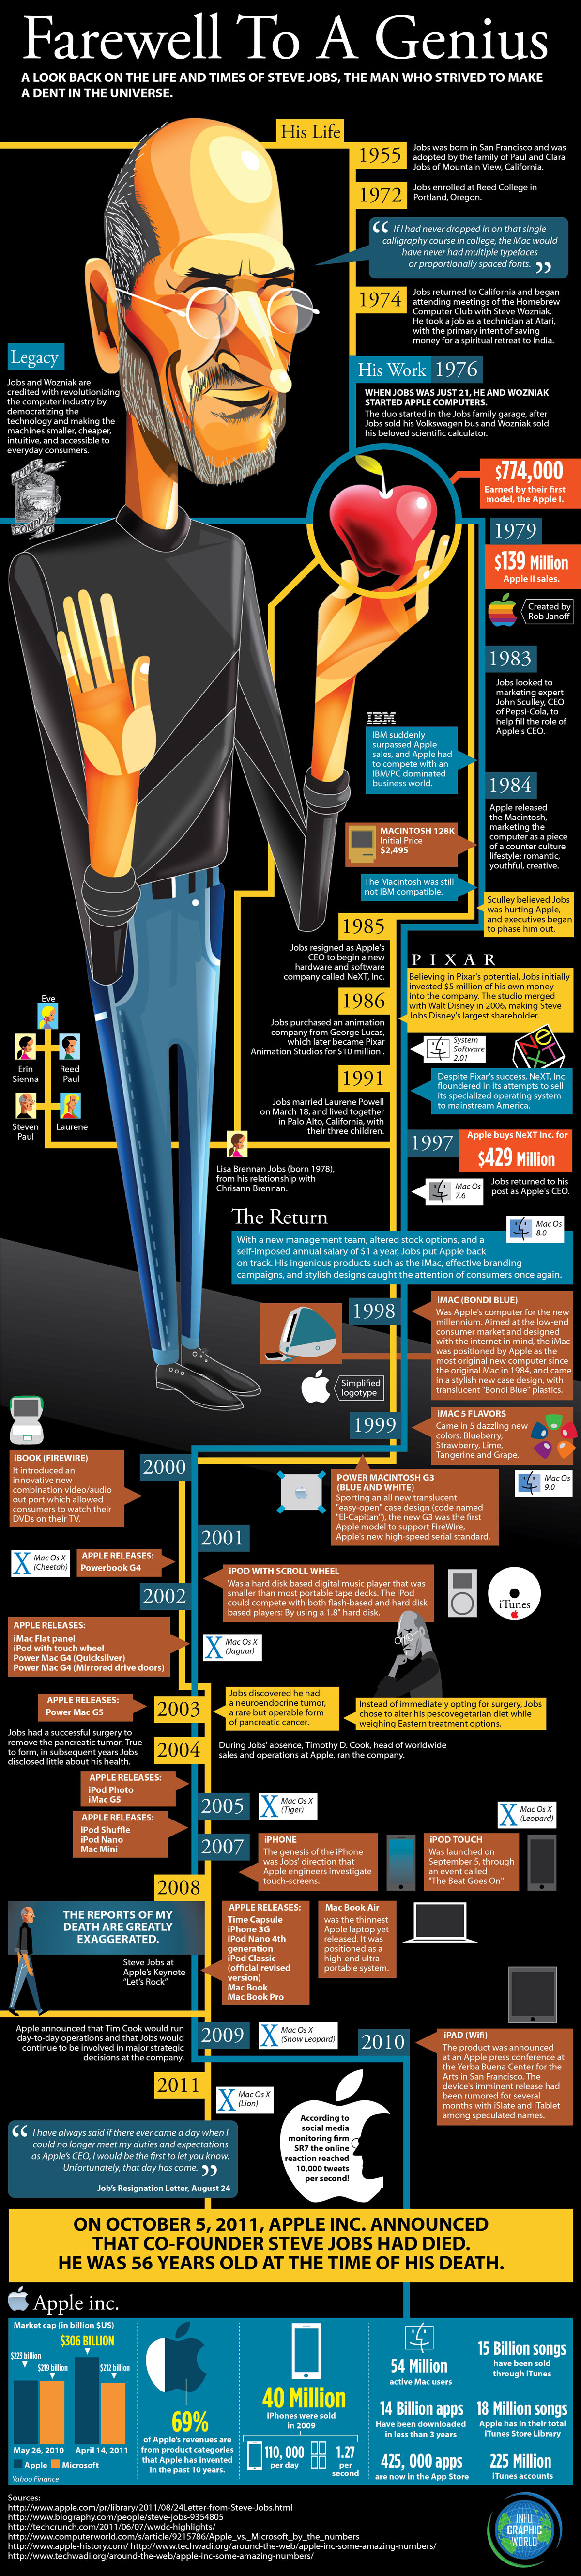 The Life of Steve Jobs - INFOGRAPHIC